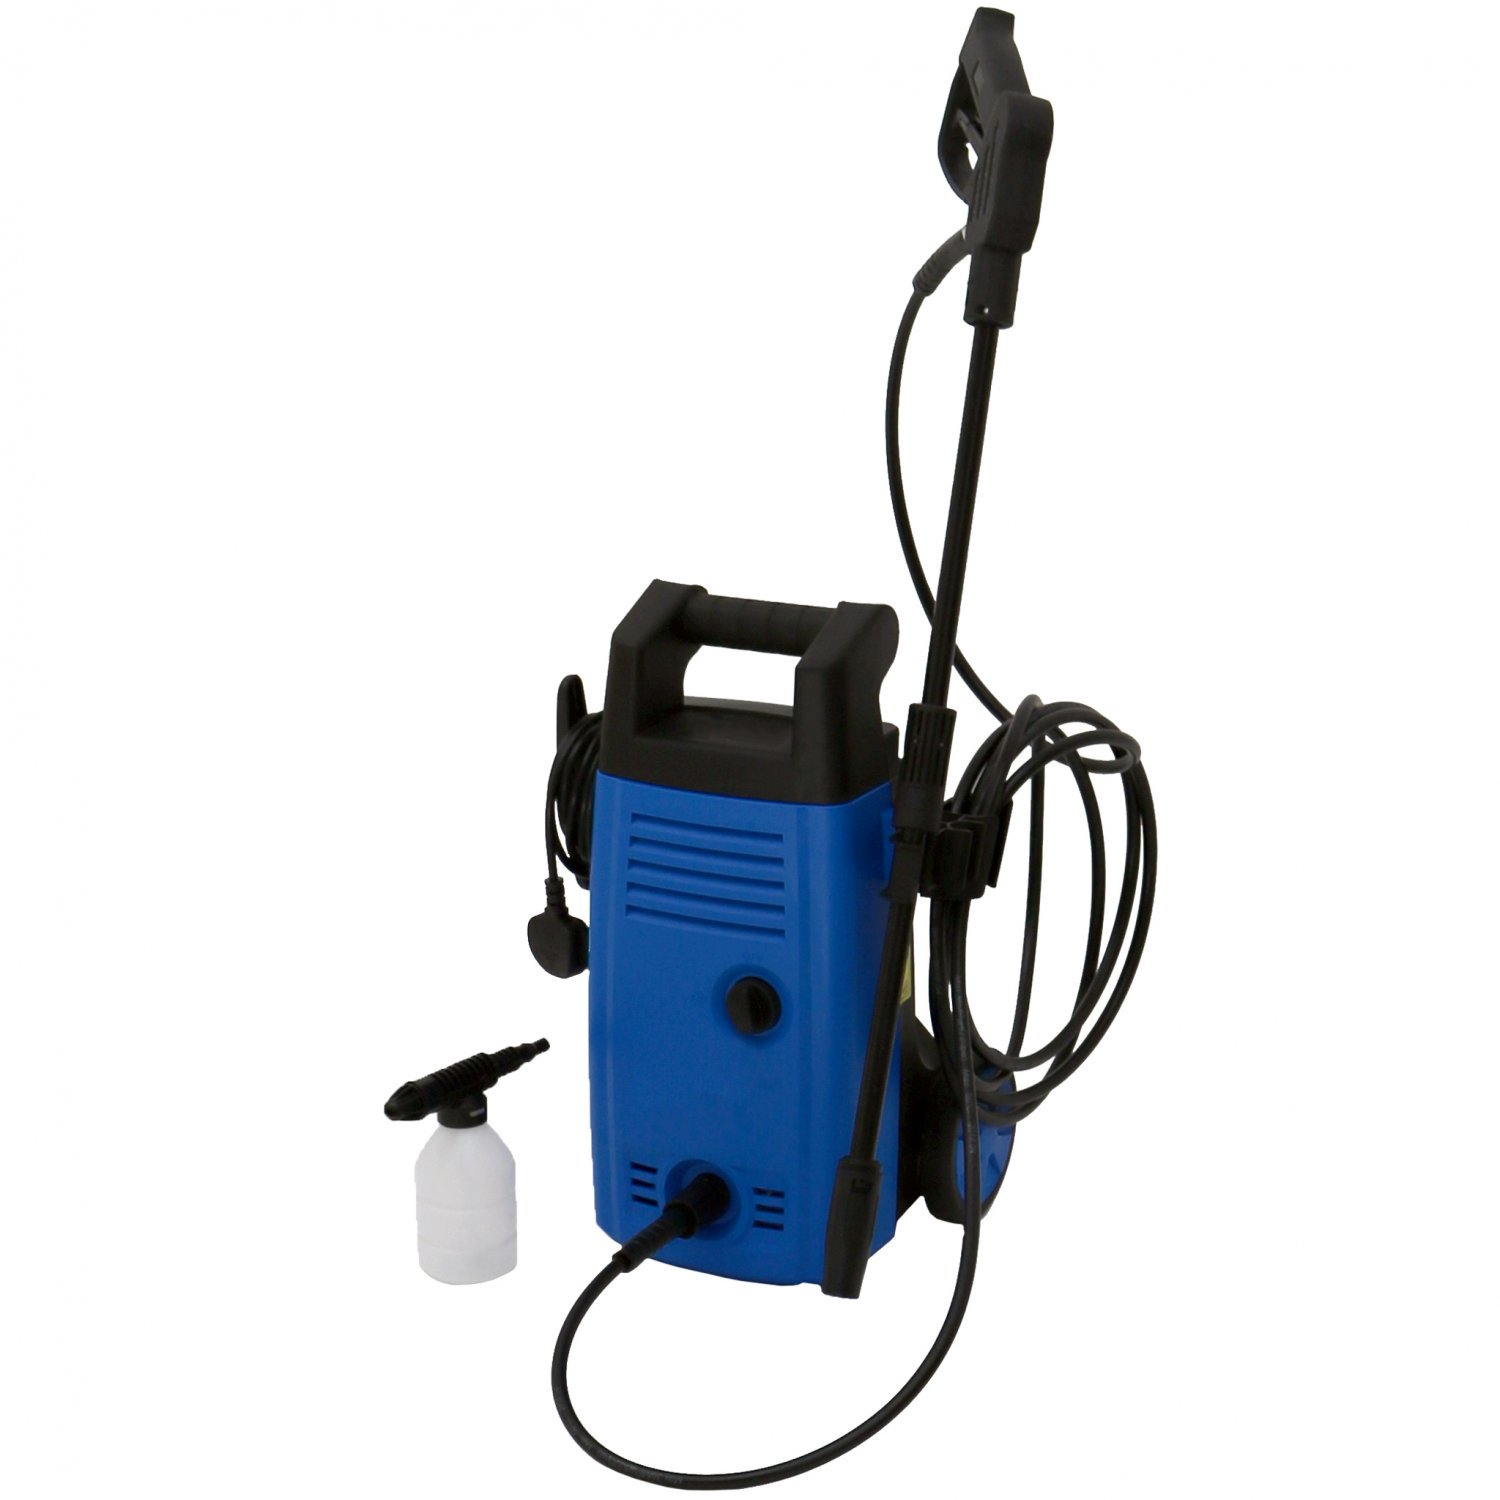 1400W 105Bar High Pressure Jet Washer Cleaner and Accessories